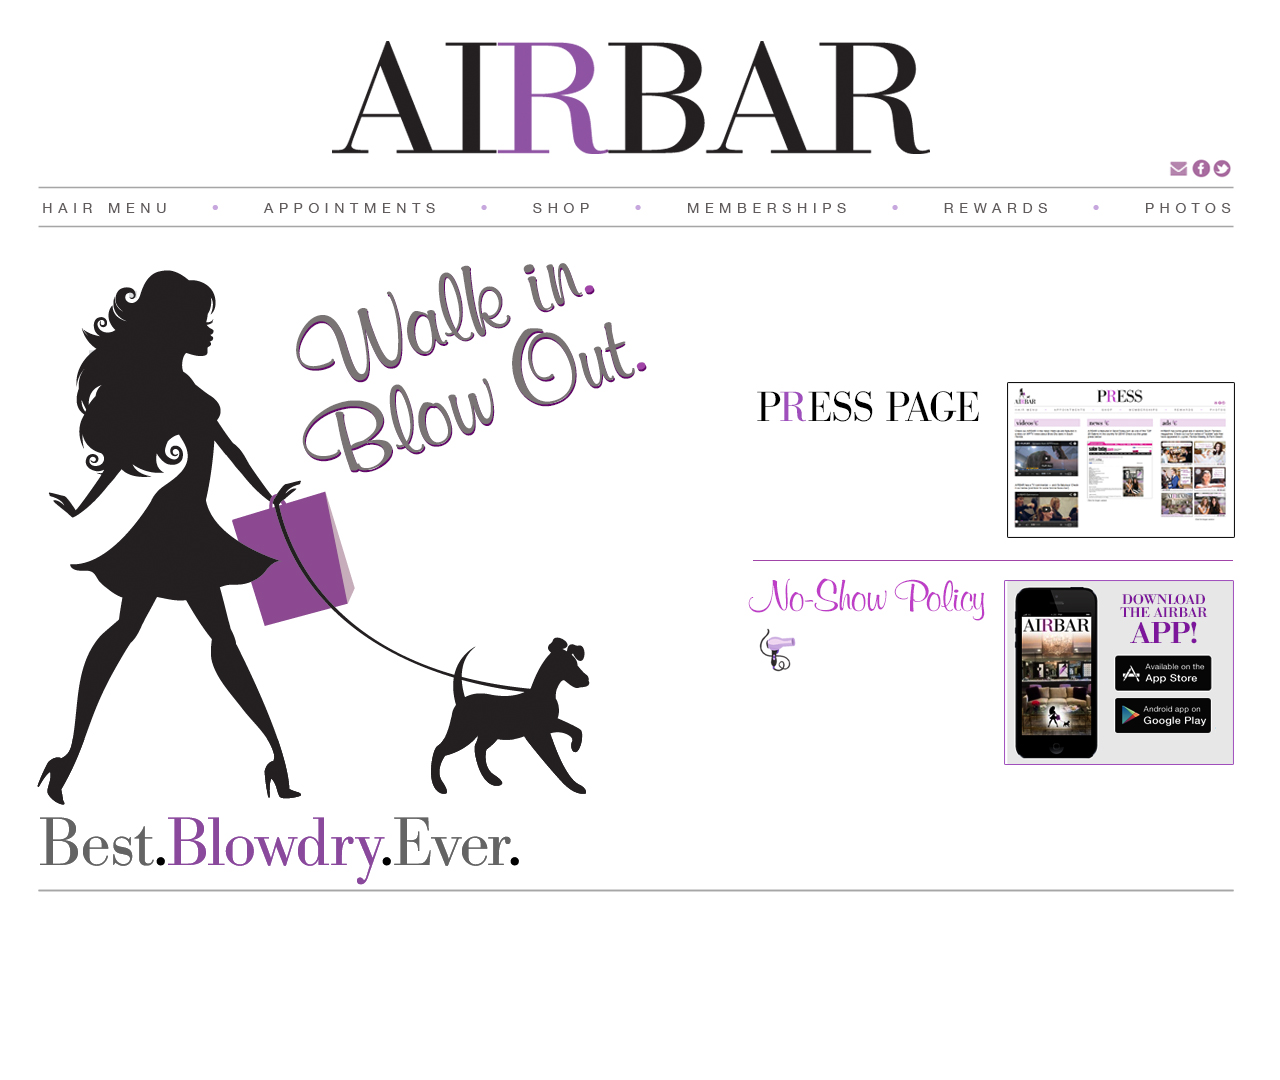 AIRBAR. Walk in. Blow out.